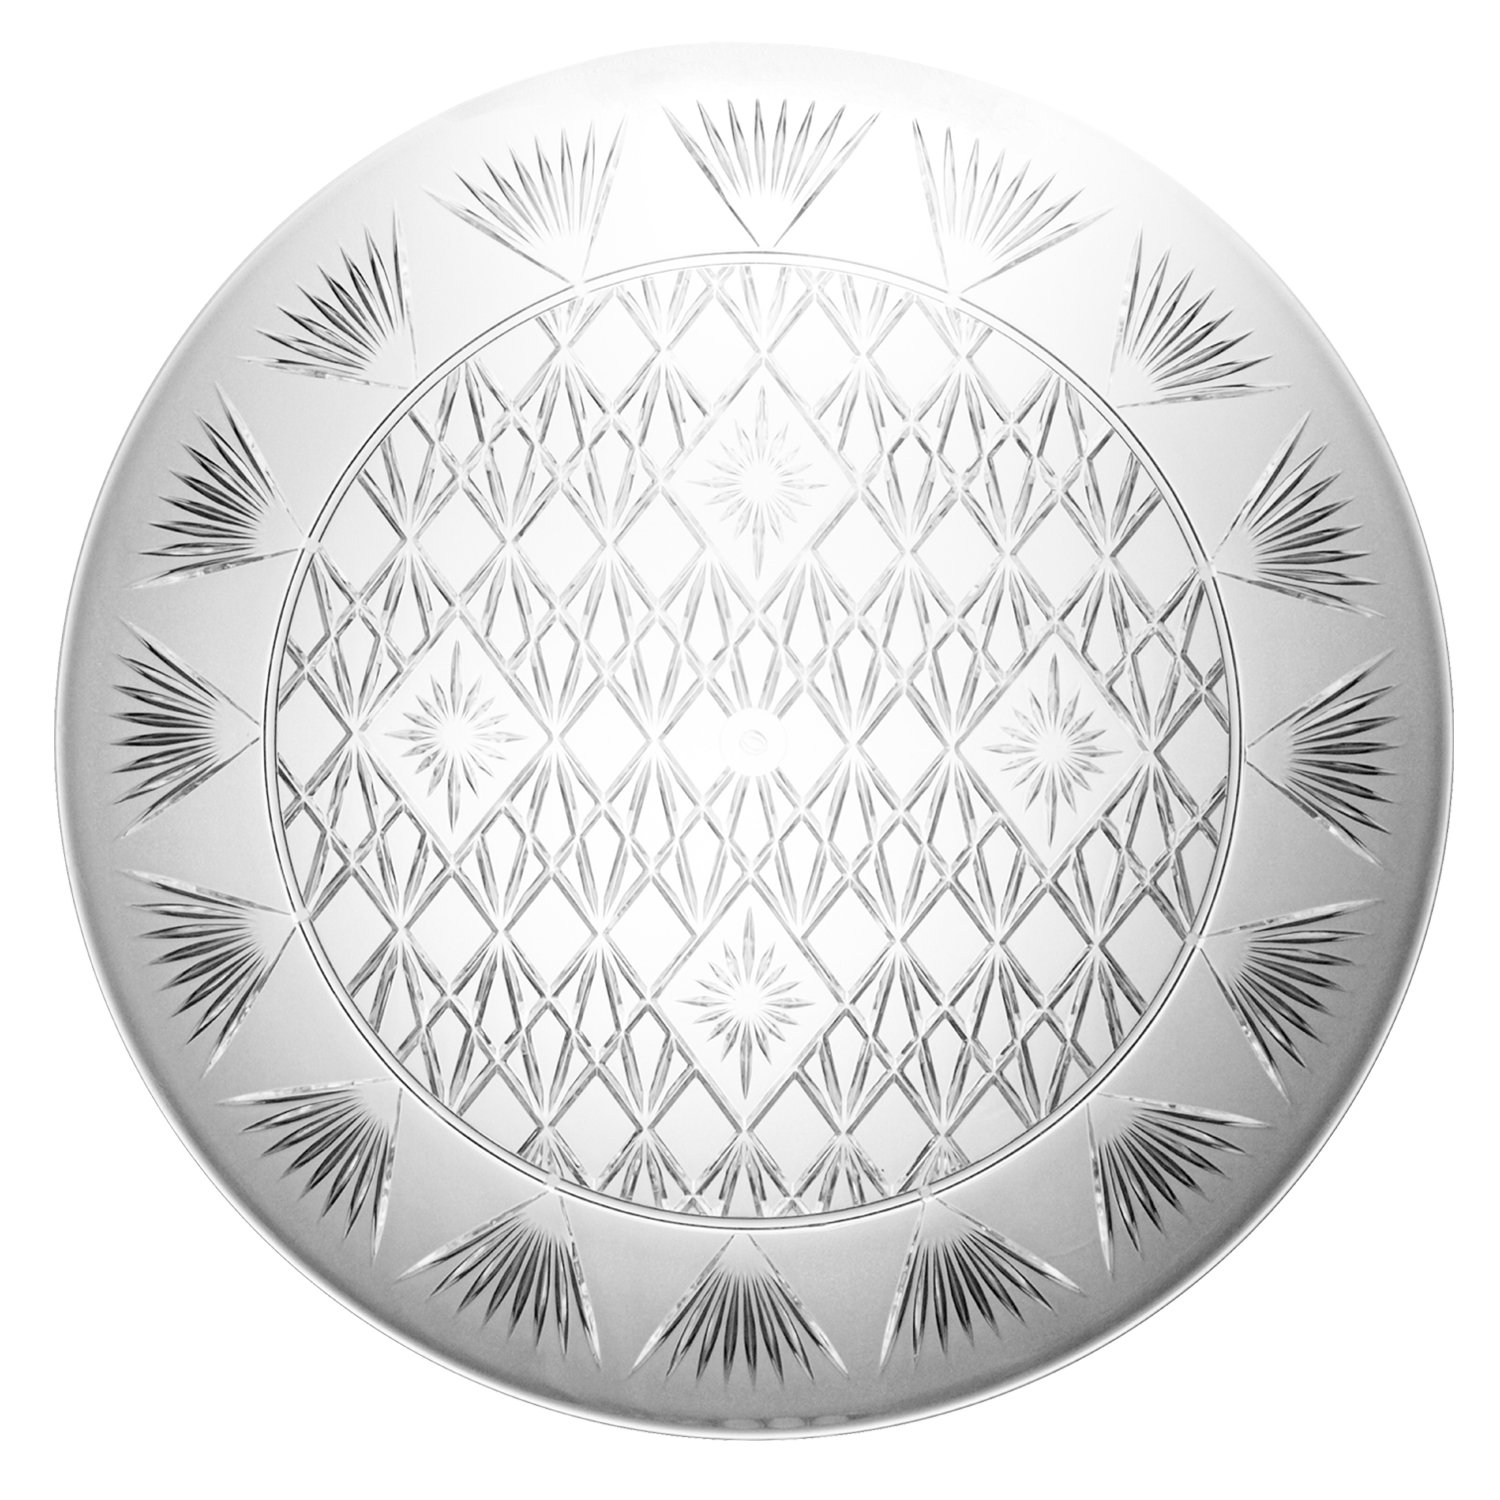 Party Essentials Hard Plastic 16-Inch Round Diamond Cut Serving Tray, Crystal Clear, Single Unit by Party Essentials